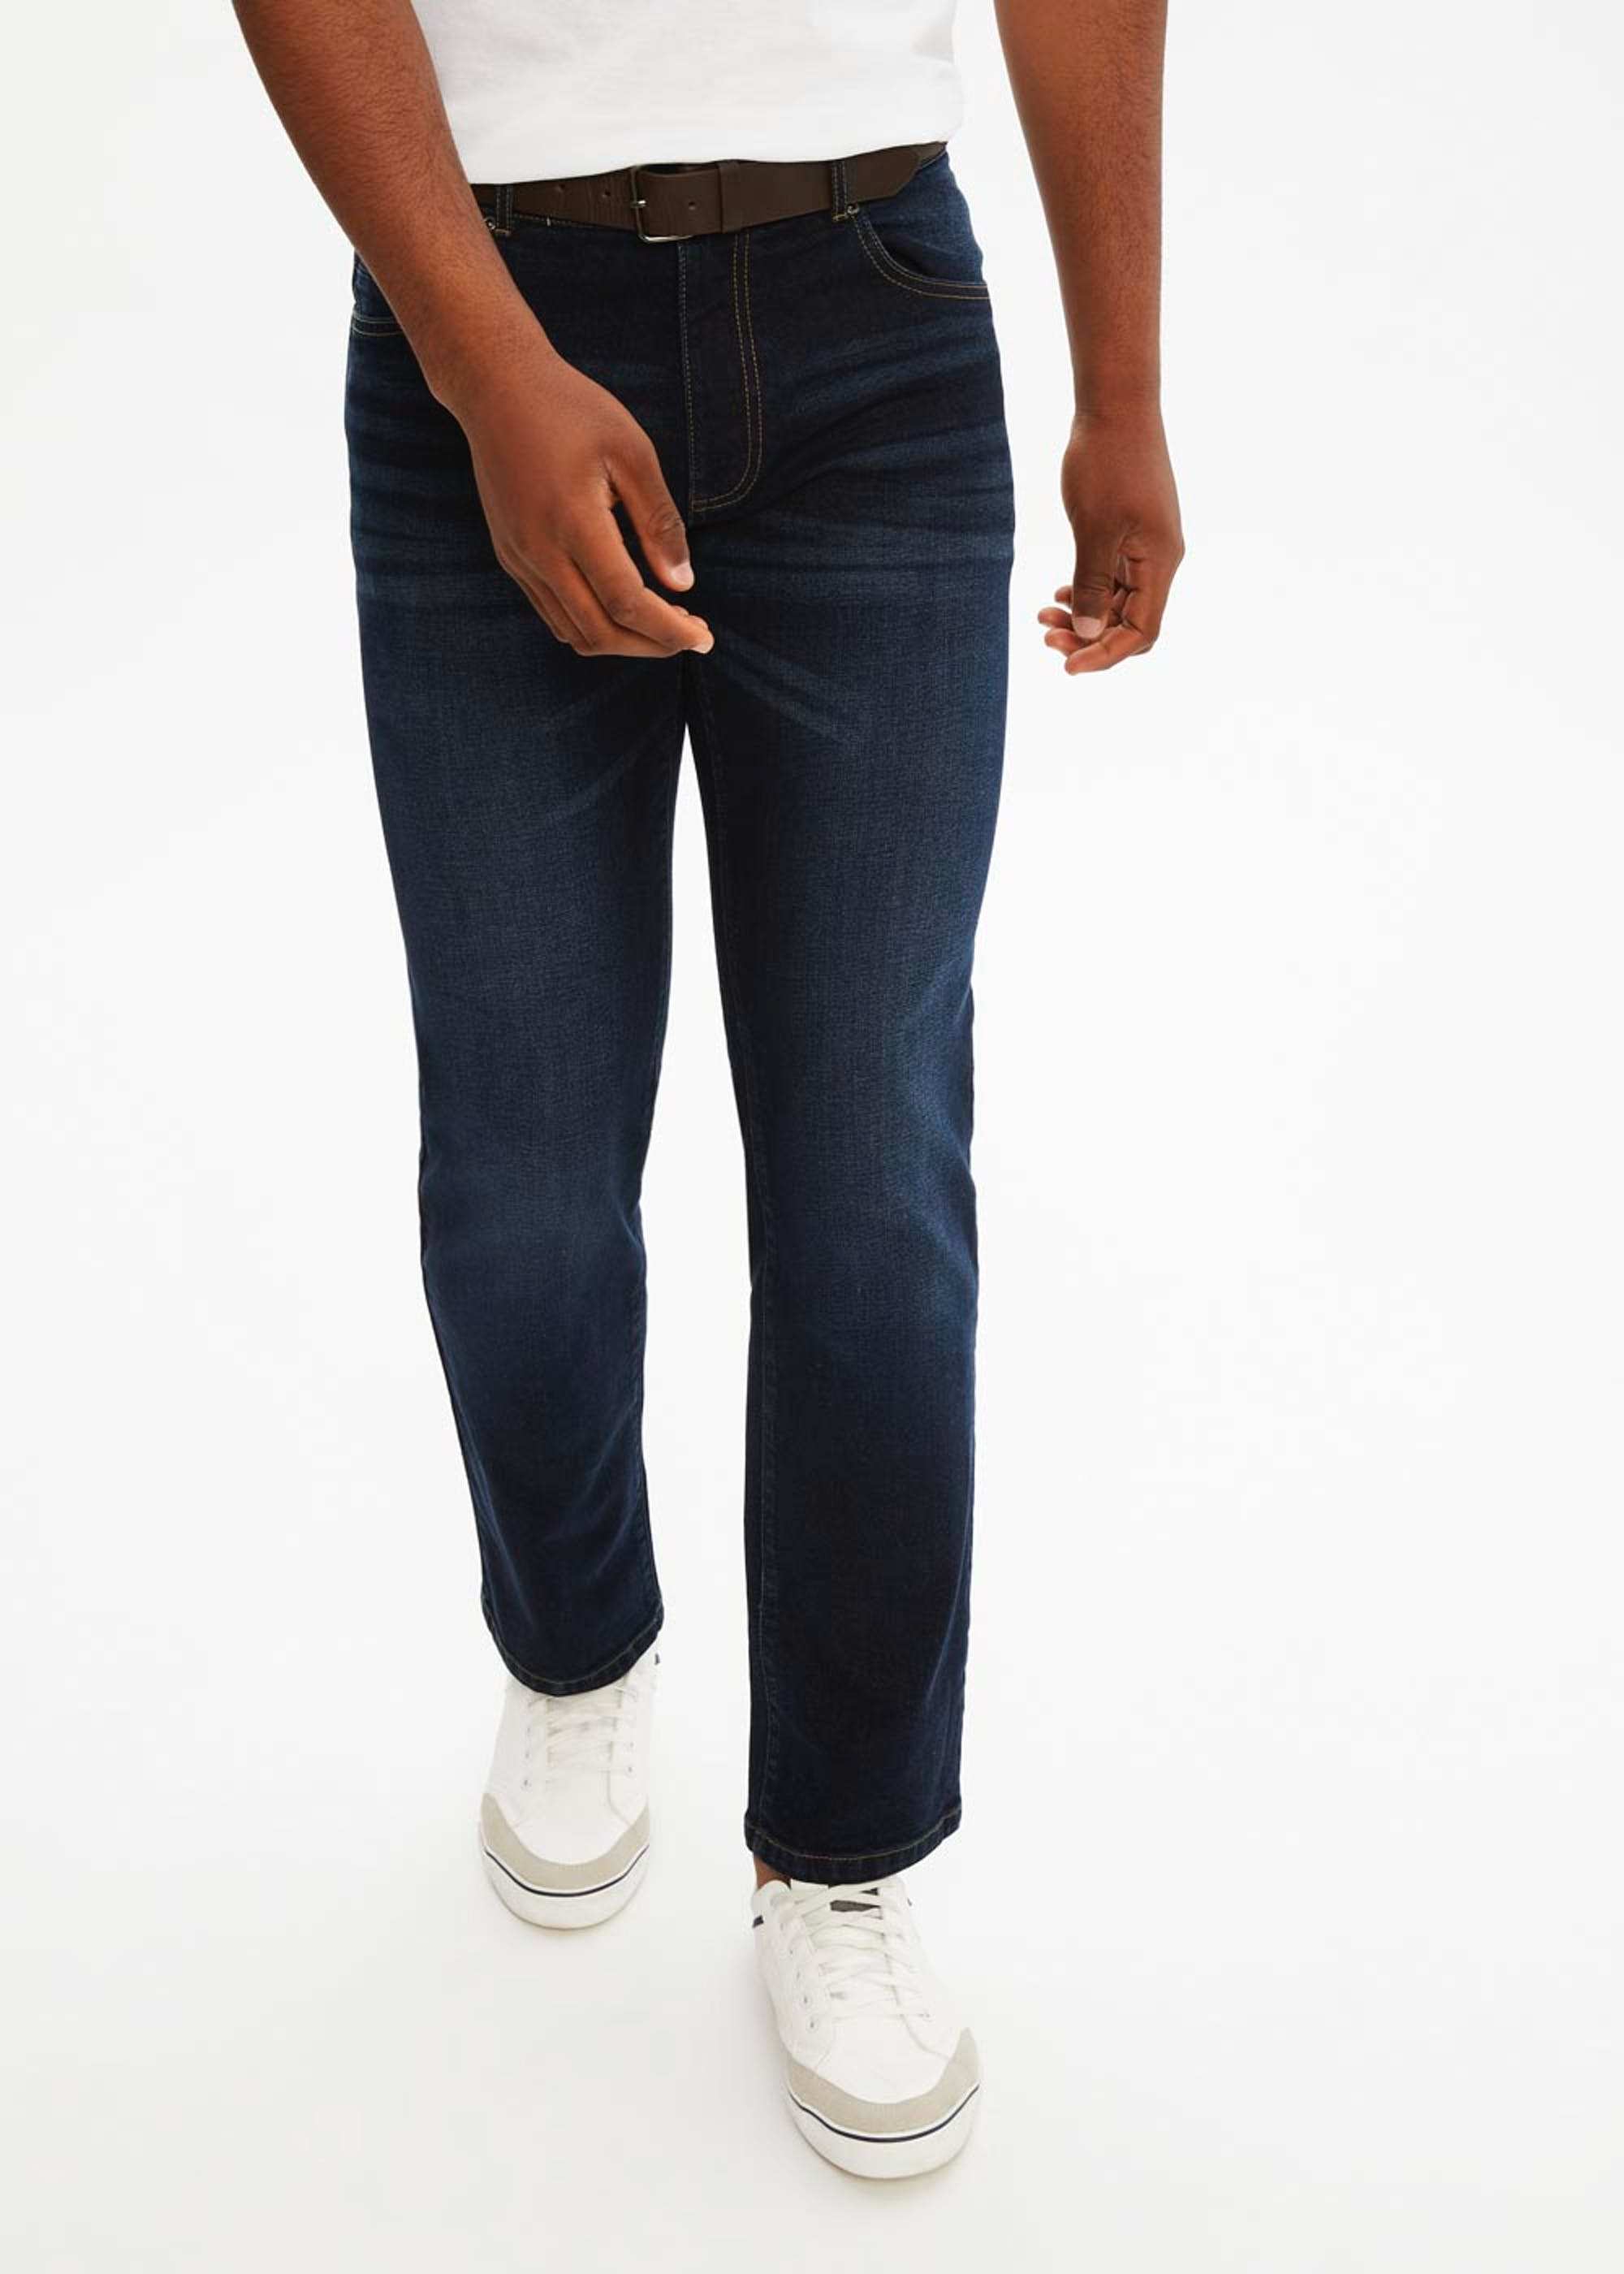 Belted Stretch Straight Fit Jeans Indigo vv4Jax